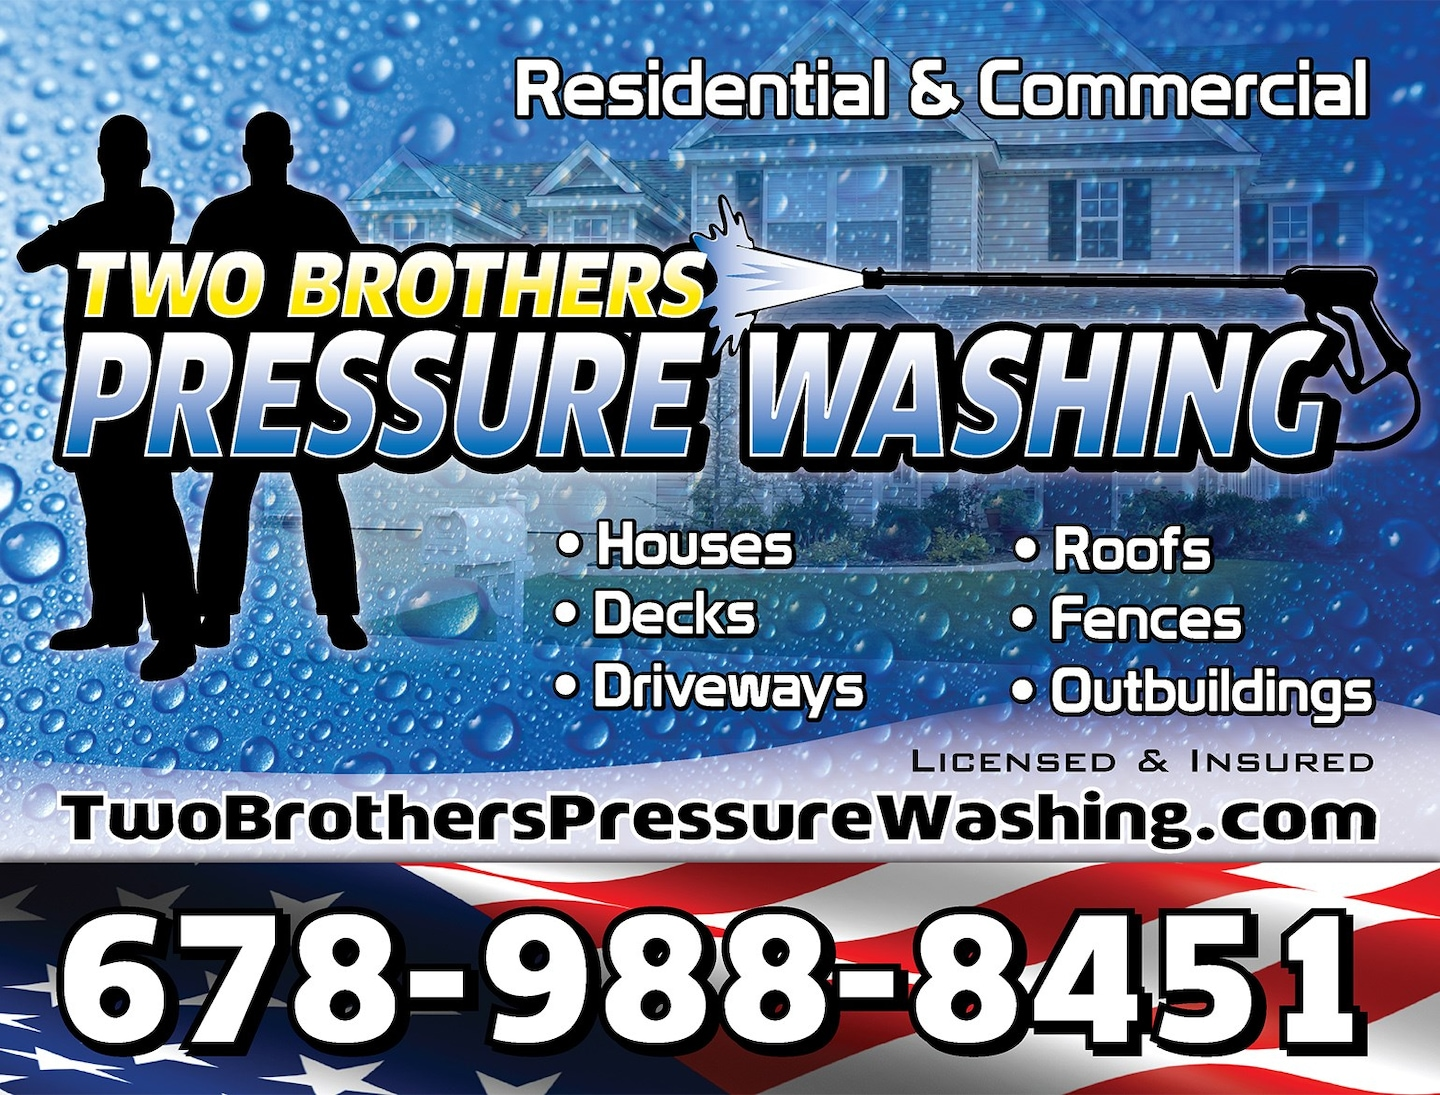 Two Brothers Pressure Washing